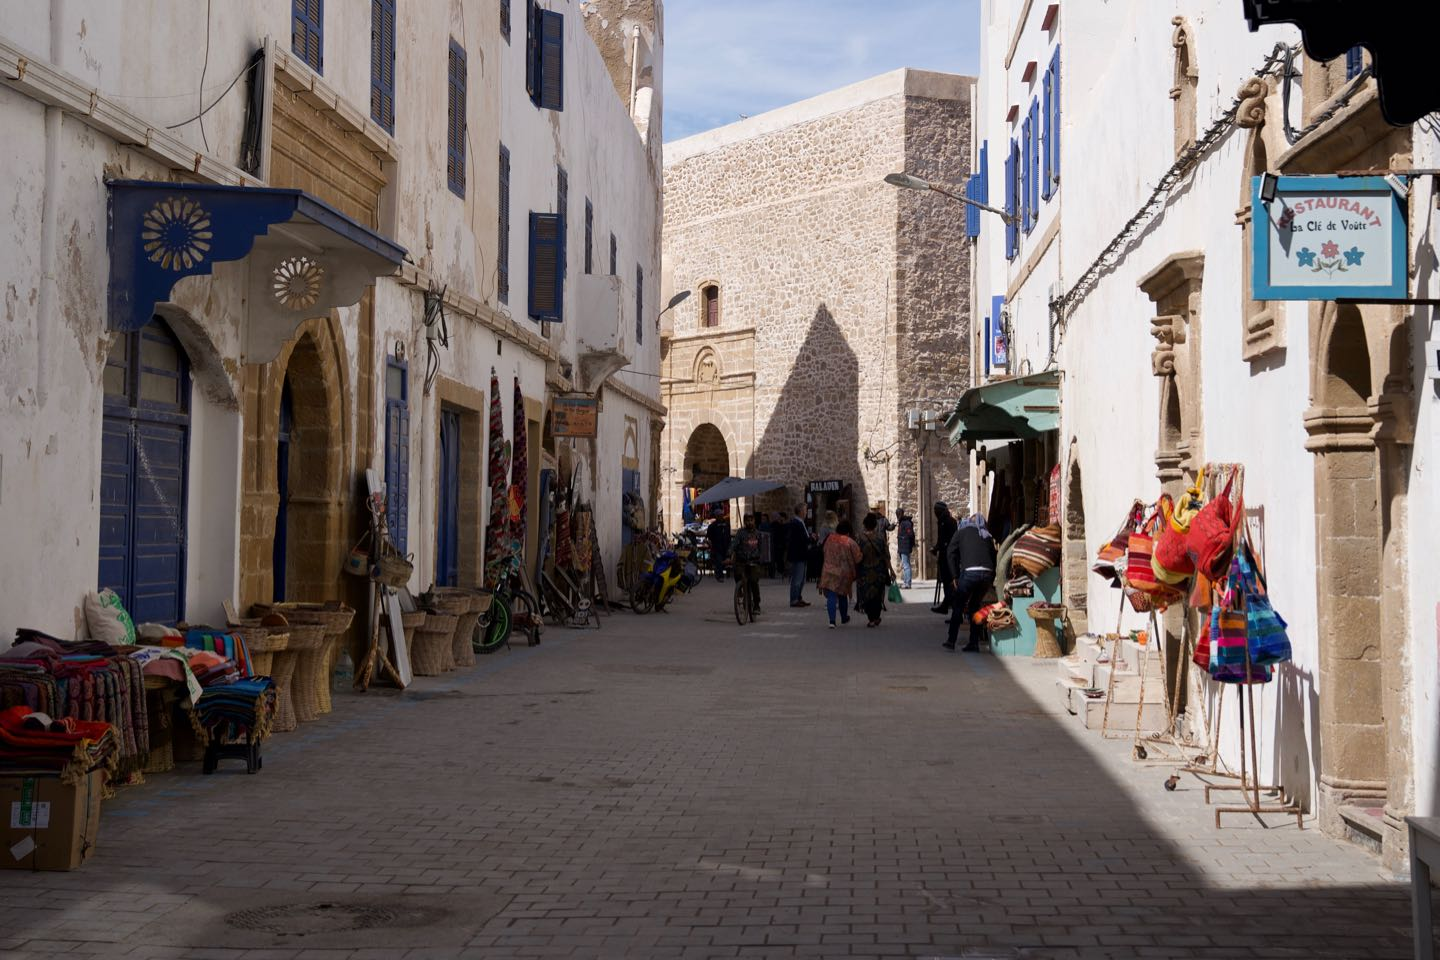 One of the main street inside the medina.